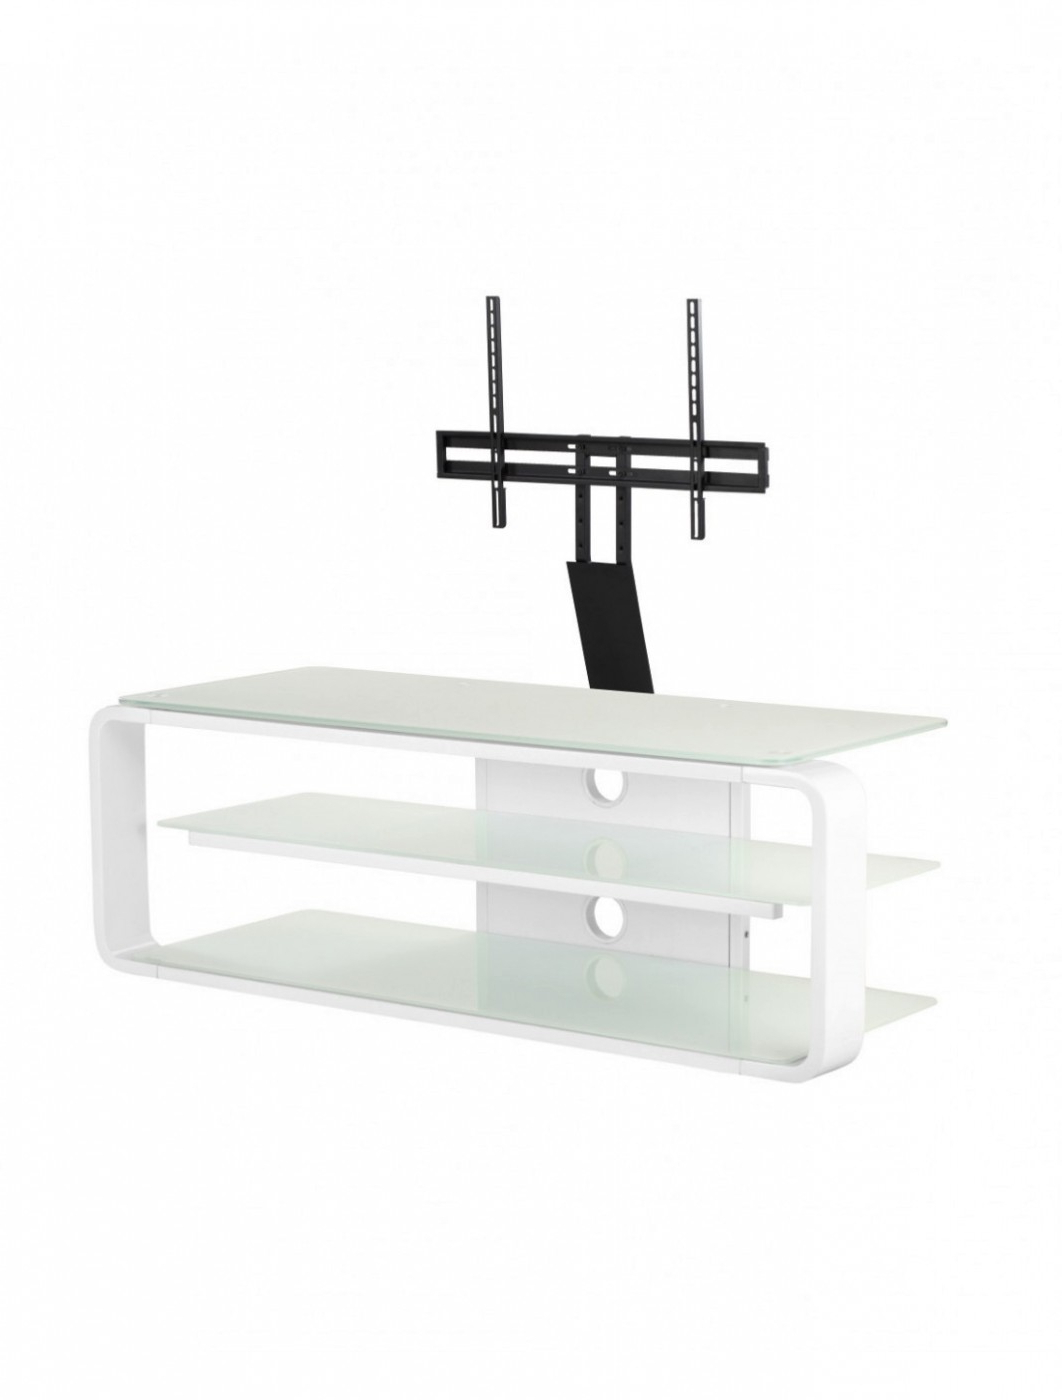 Tv Stand With Mount Assembly Instructions Pertaining To Easyfashion Modern Mobile Tv Stands Rolling Tv Cart For Flat Panel Tvs (View 12 of 20)